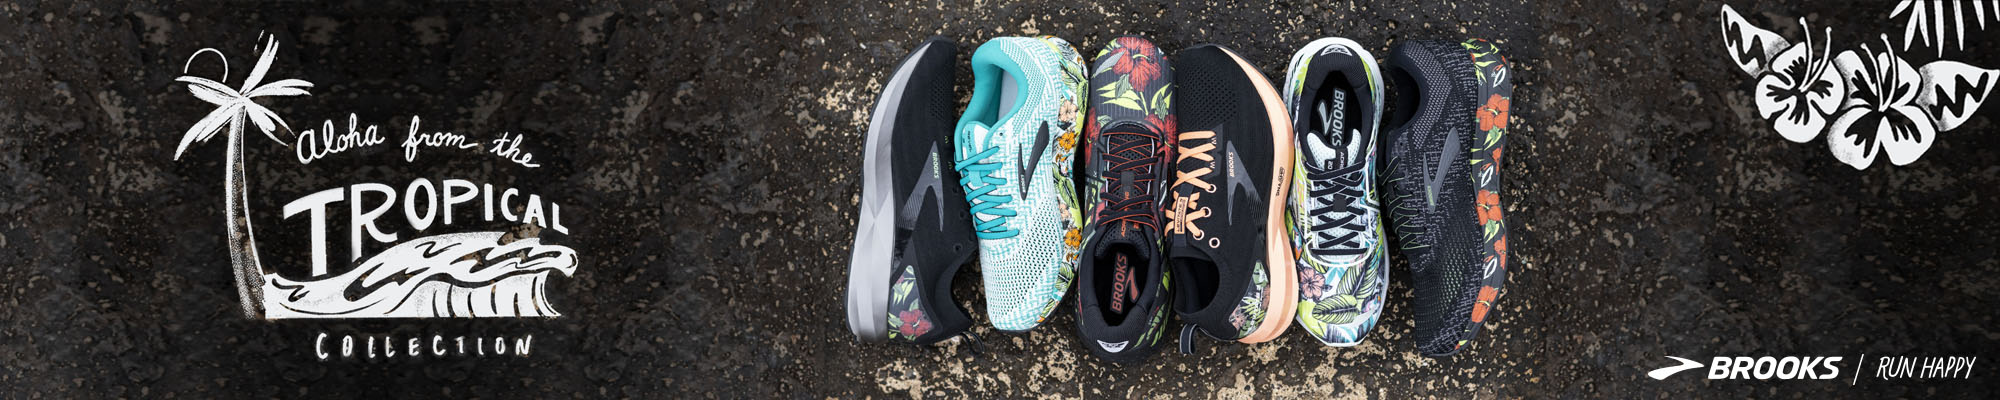 Brooks Tropical Collection